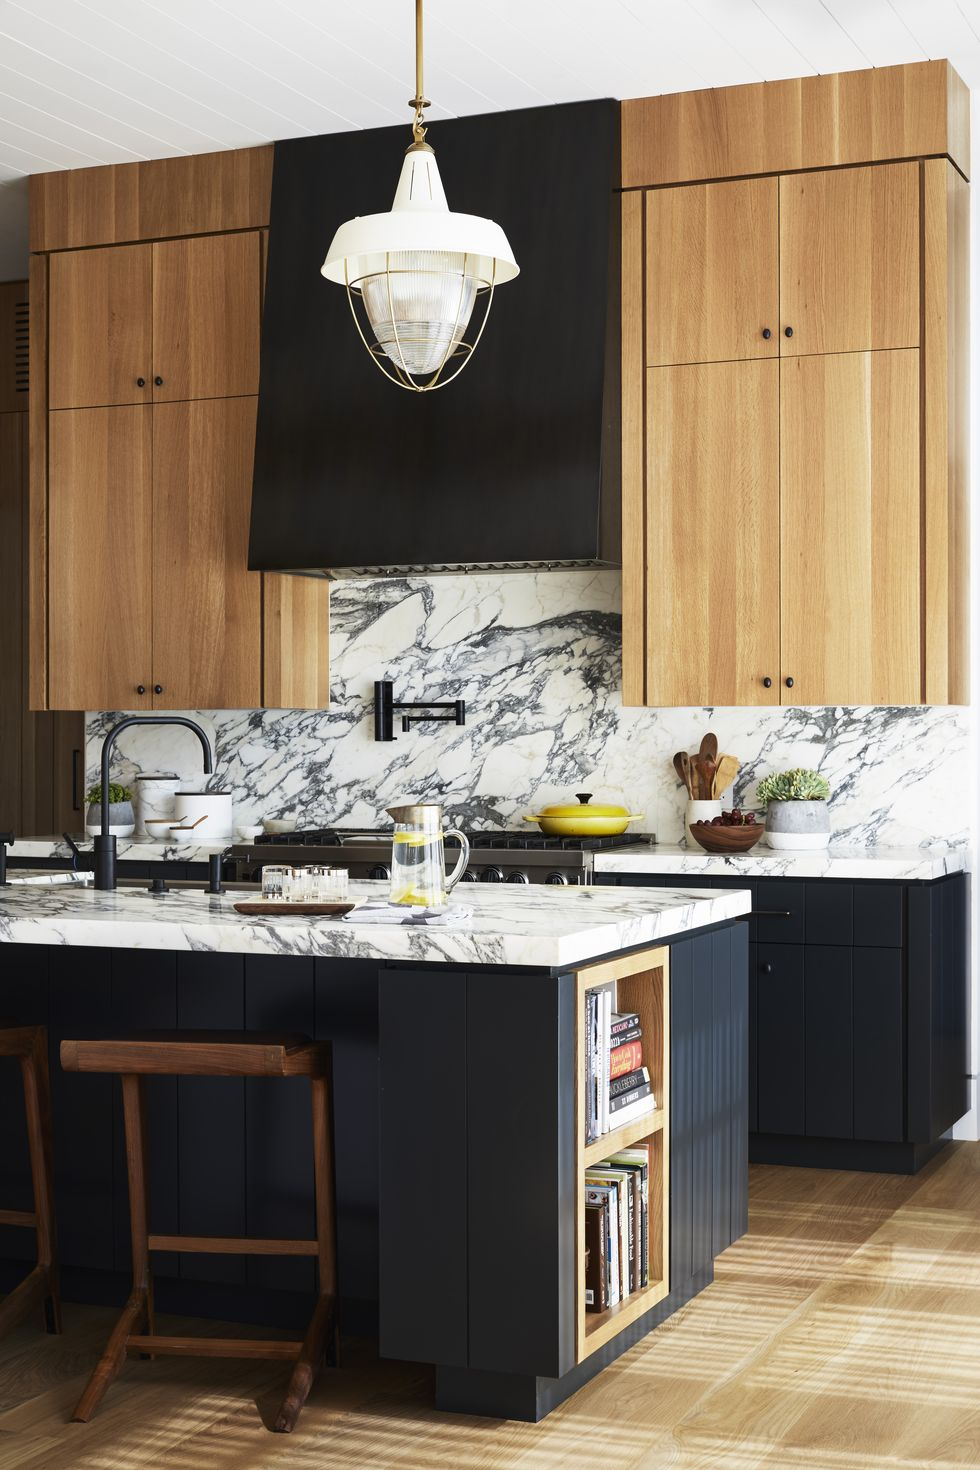 Top Designers Say These Kitchen Trends Will Be Everywhere In 2020